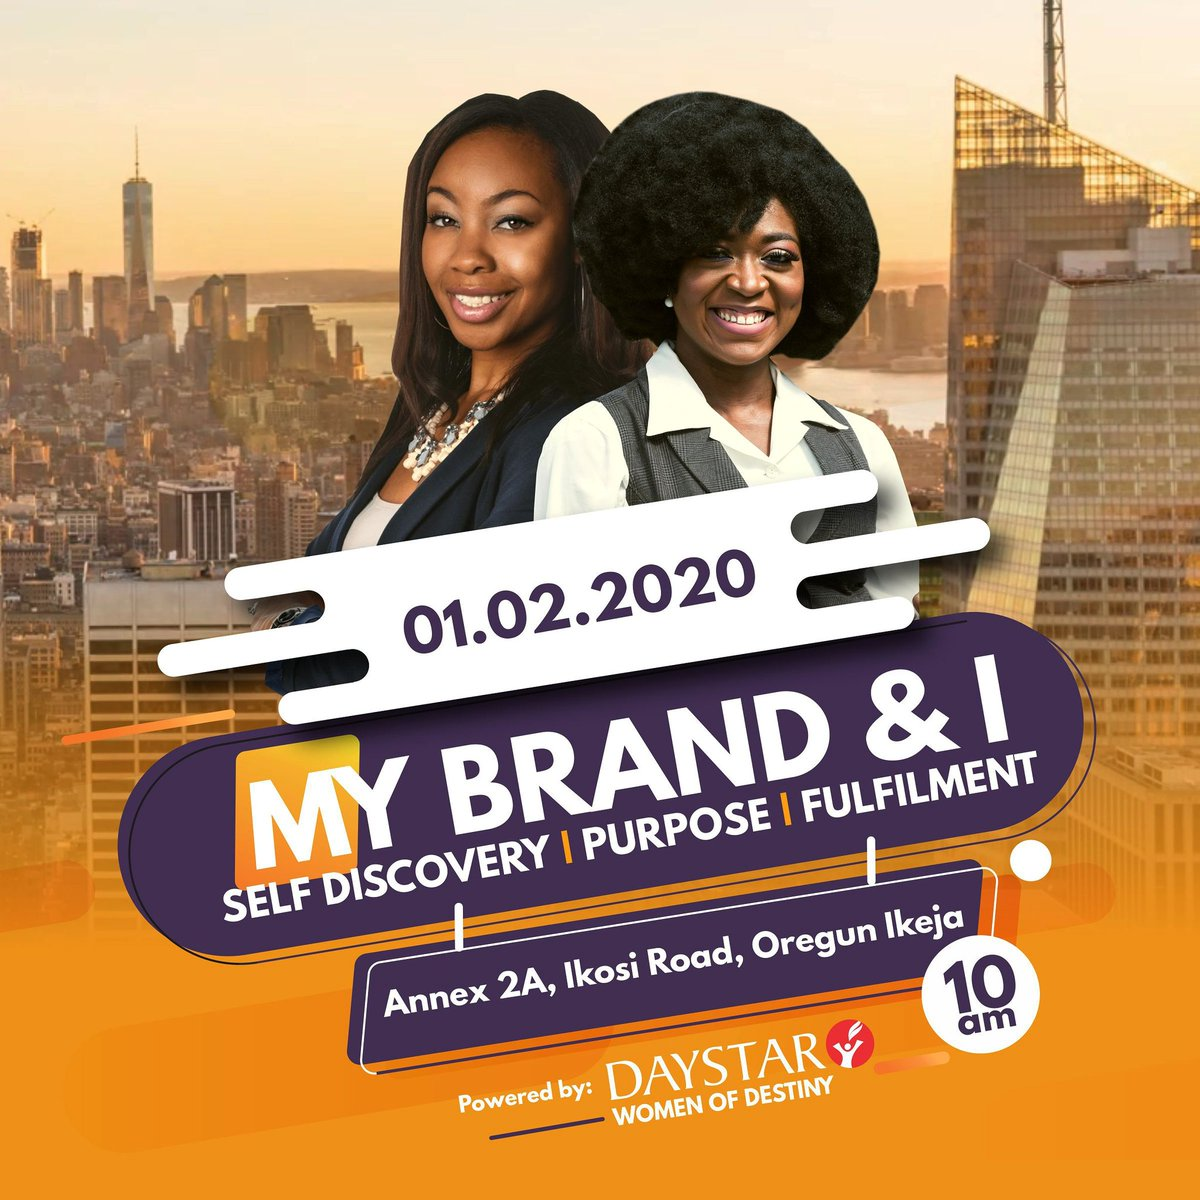 'My Brand & I' is an event put together by The Women Of Destiny to help you discover yourself, your purpose and find fulfilment.  It's happening this Saturday!   10am  01.02.2020  Annex 2a Ikosi Road, Oregun Ikeja   Invite a woman  #WOD #Women #DaystarNG<br>http://pic.twitter.com/bcwGaybNVD